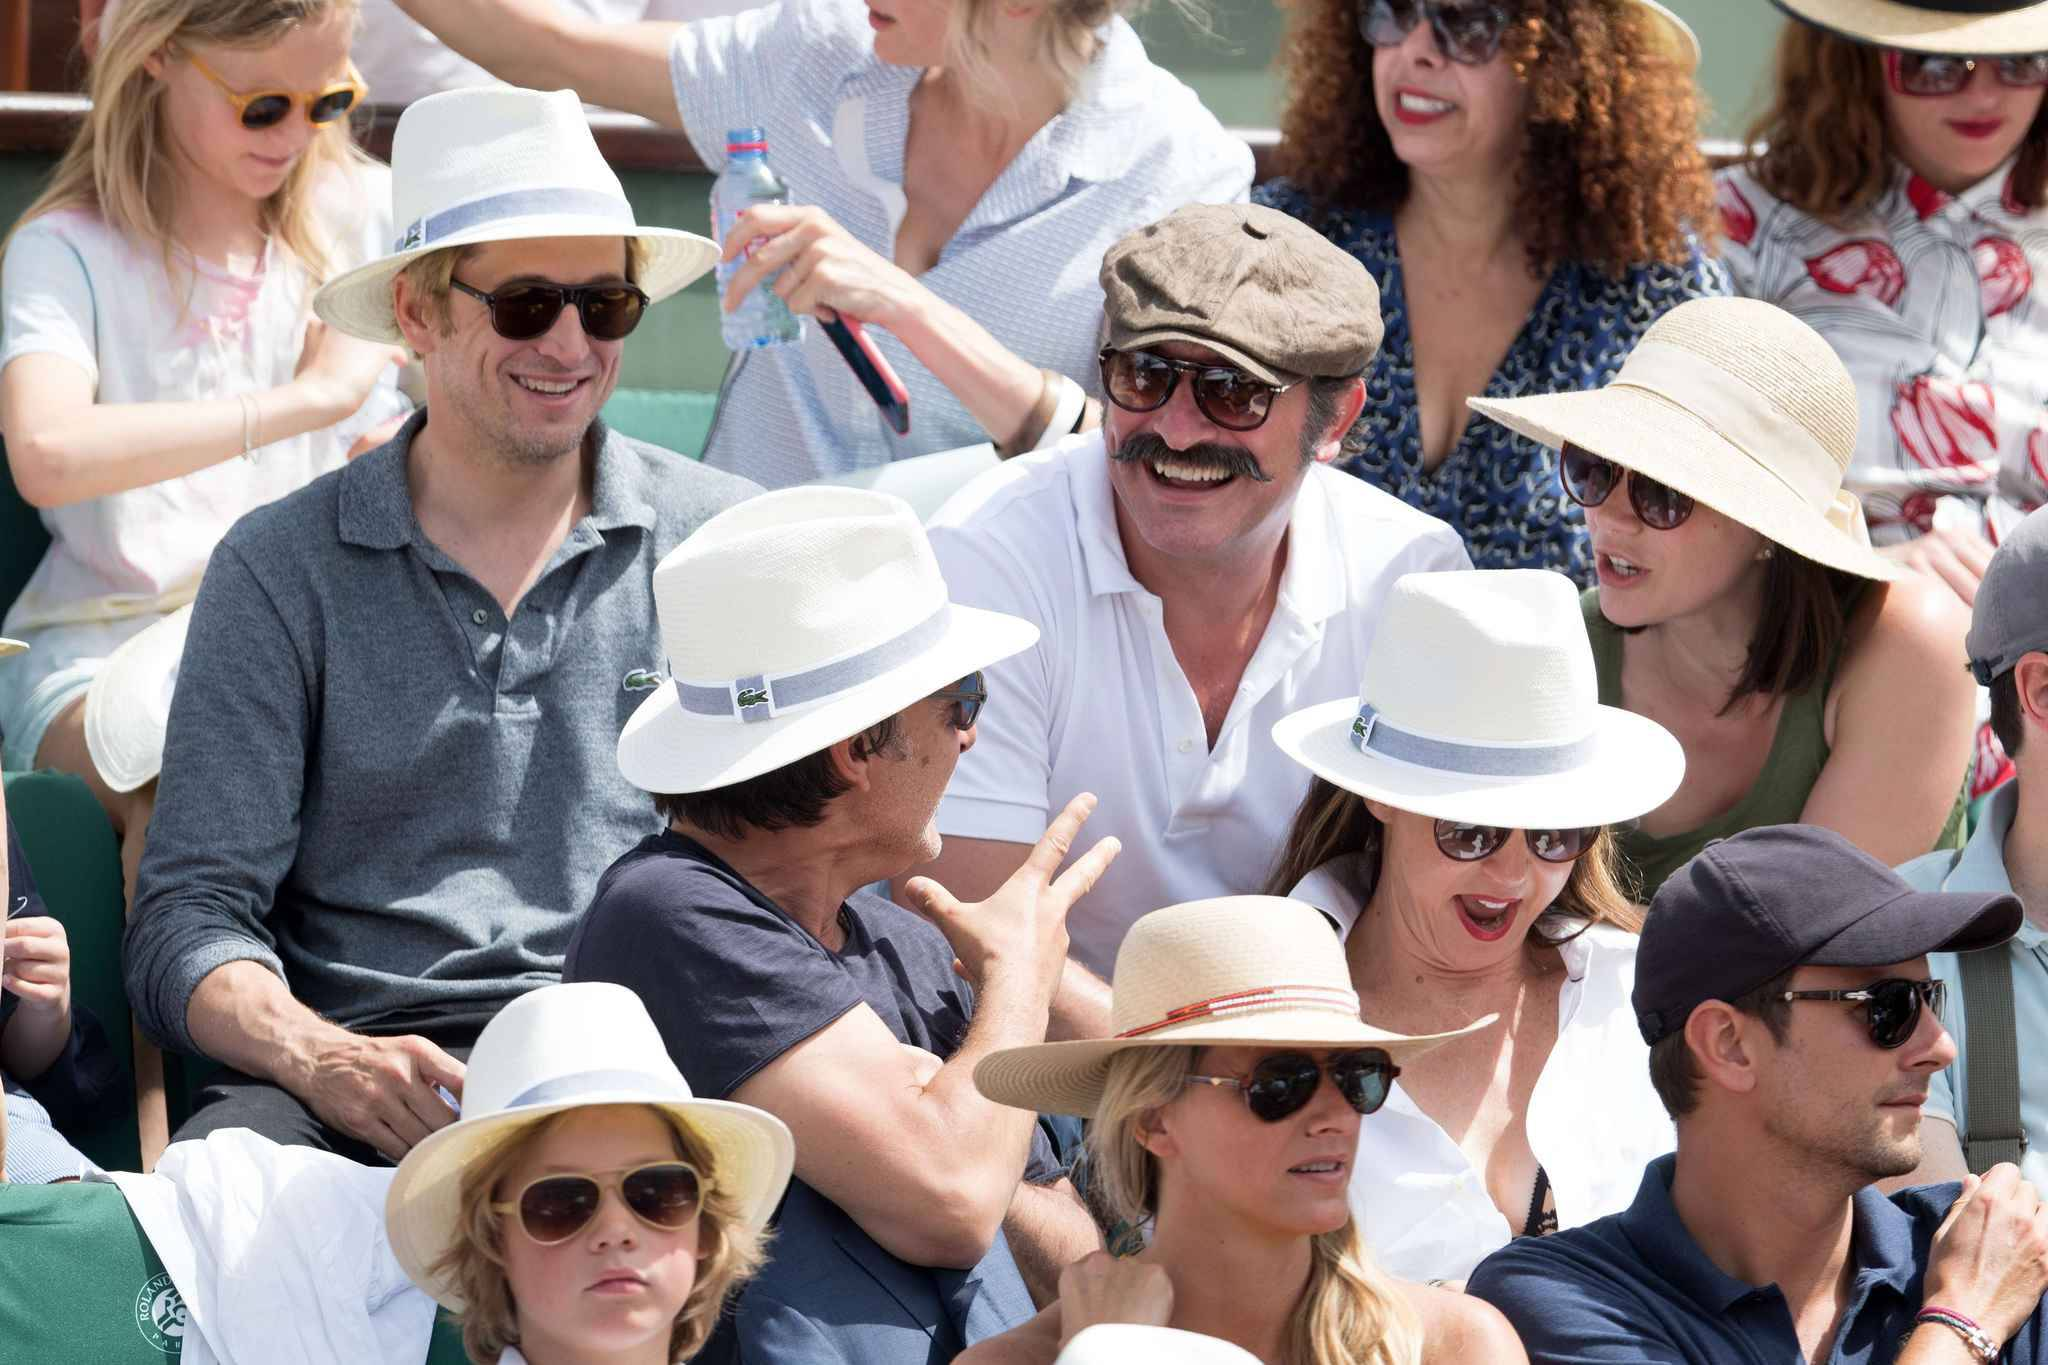 Guillaume Canet, Jean Dujardin, Nathalie Pechalat, Yvan Attal and Elsa Zylberstein attend the Men's Singles Final of the 2017 French Tennis Open  between Rafael Nadal of Spain and Stan Wawrinka of Switzerland at Roland Garros on June 11, 2017 in Paris, FRANCE.